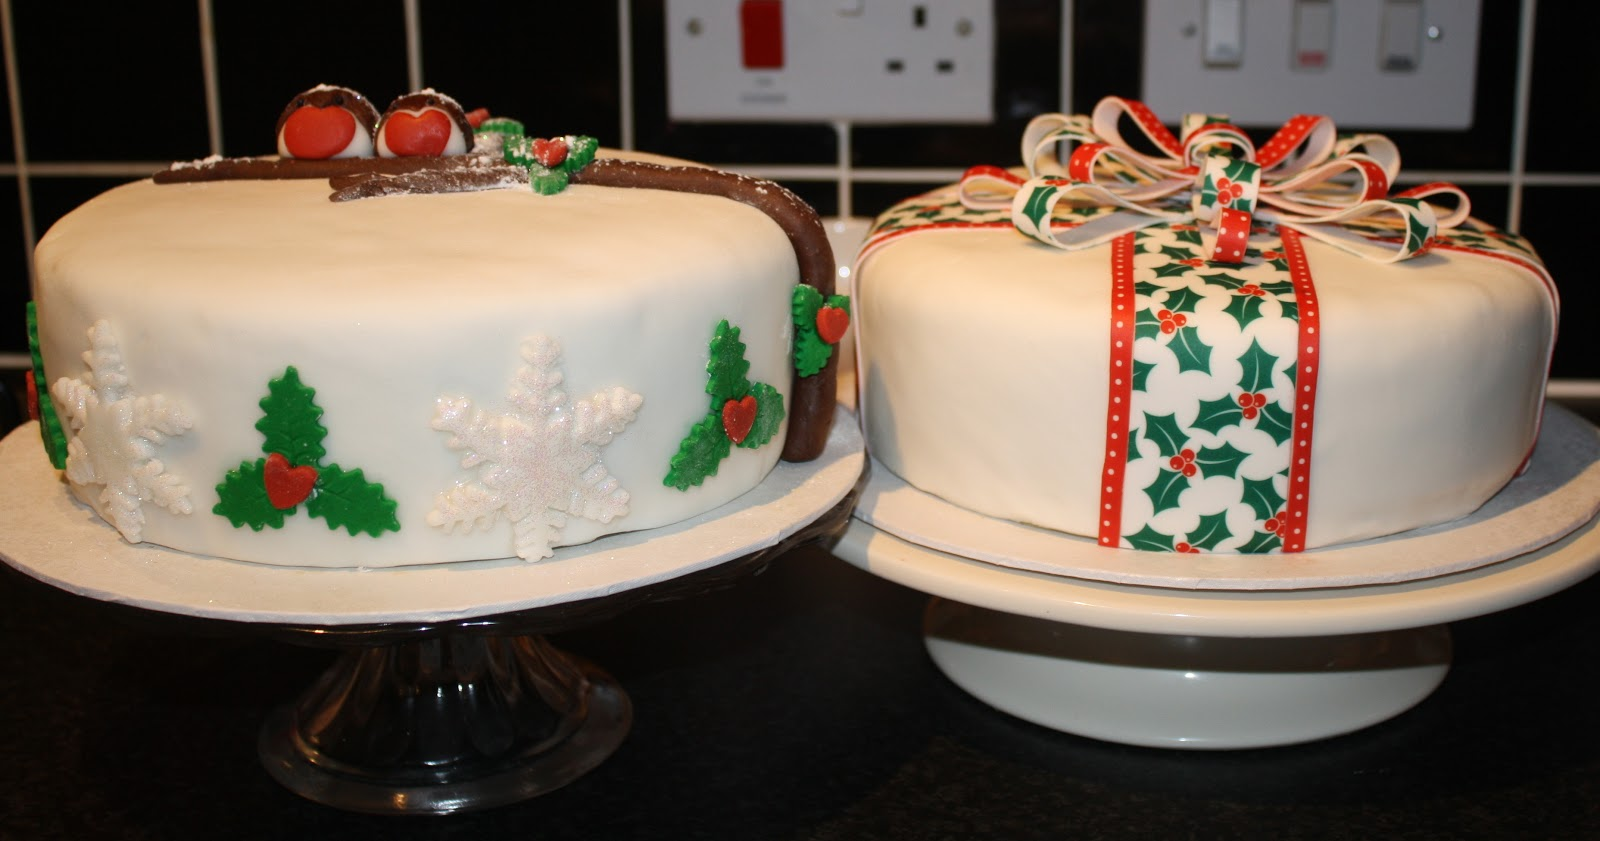 A million dresses uk fashion and lifestyle blog sunday for Decoration ideas for christmas cake